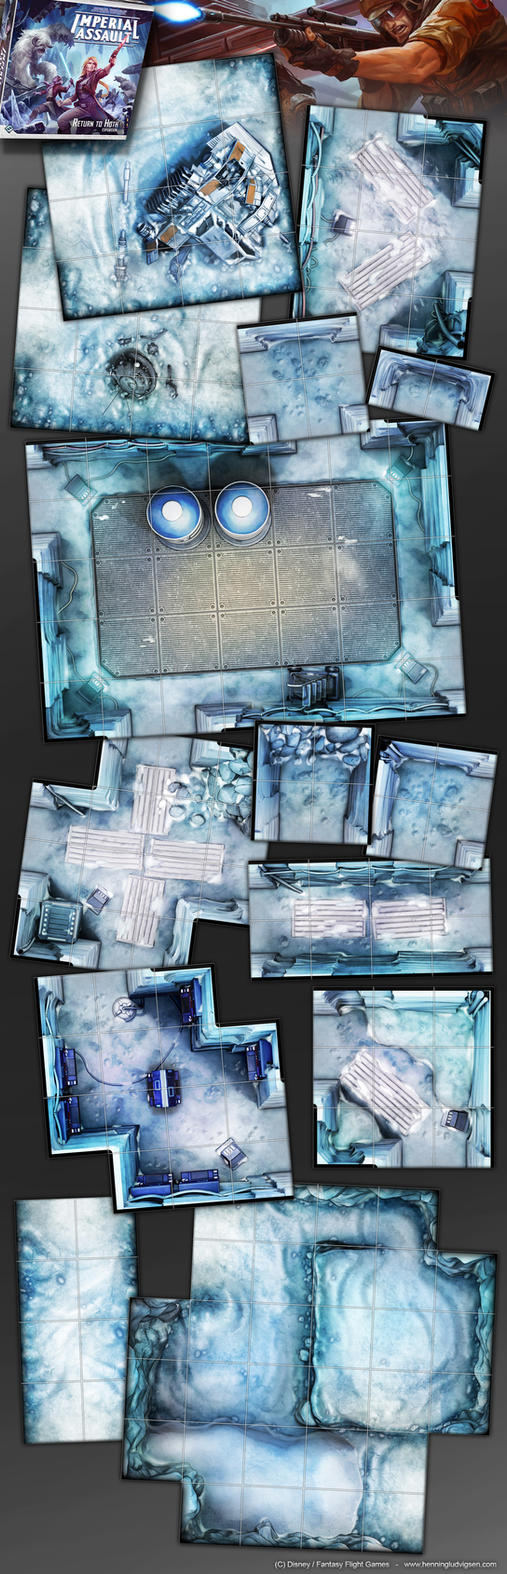 Star Wars, Imperial Assault, Return to Hoth 1 by henning